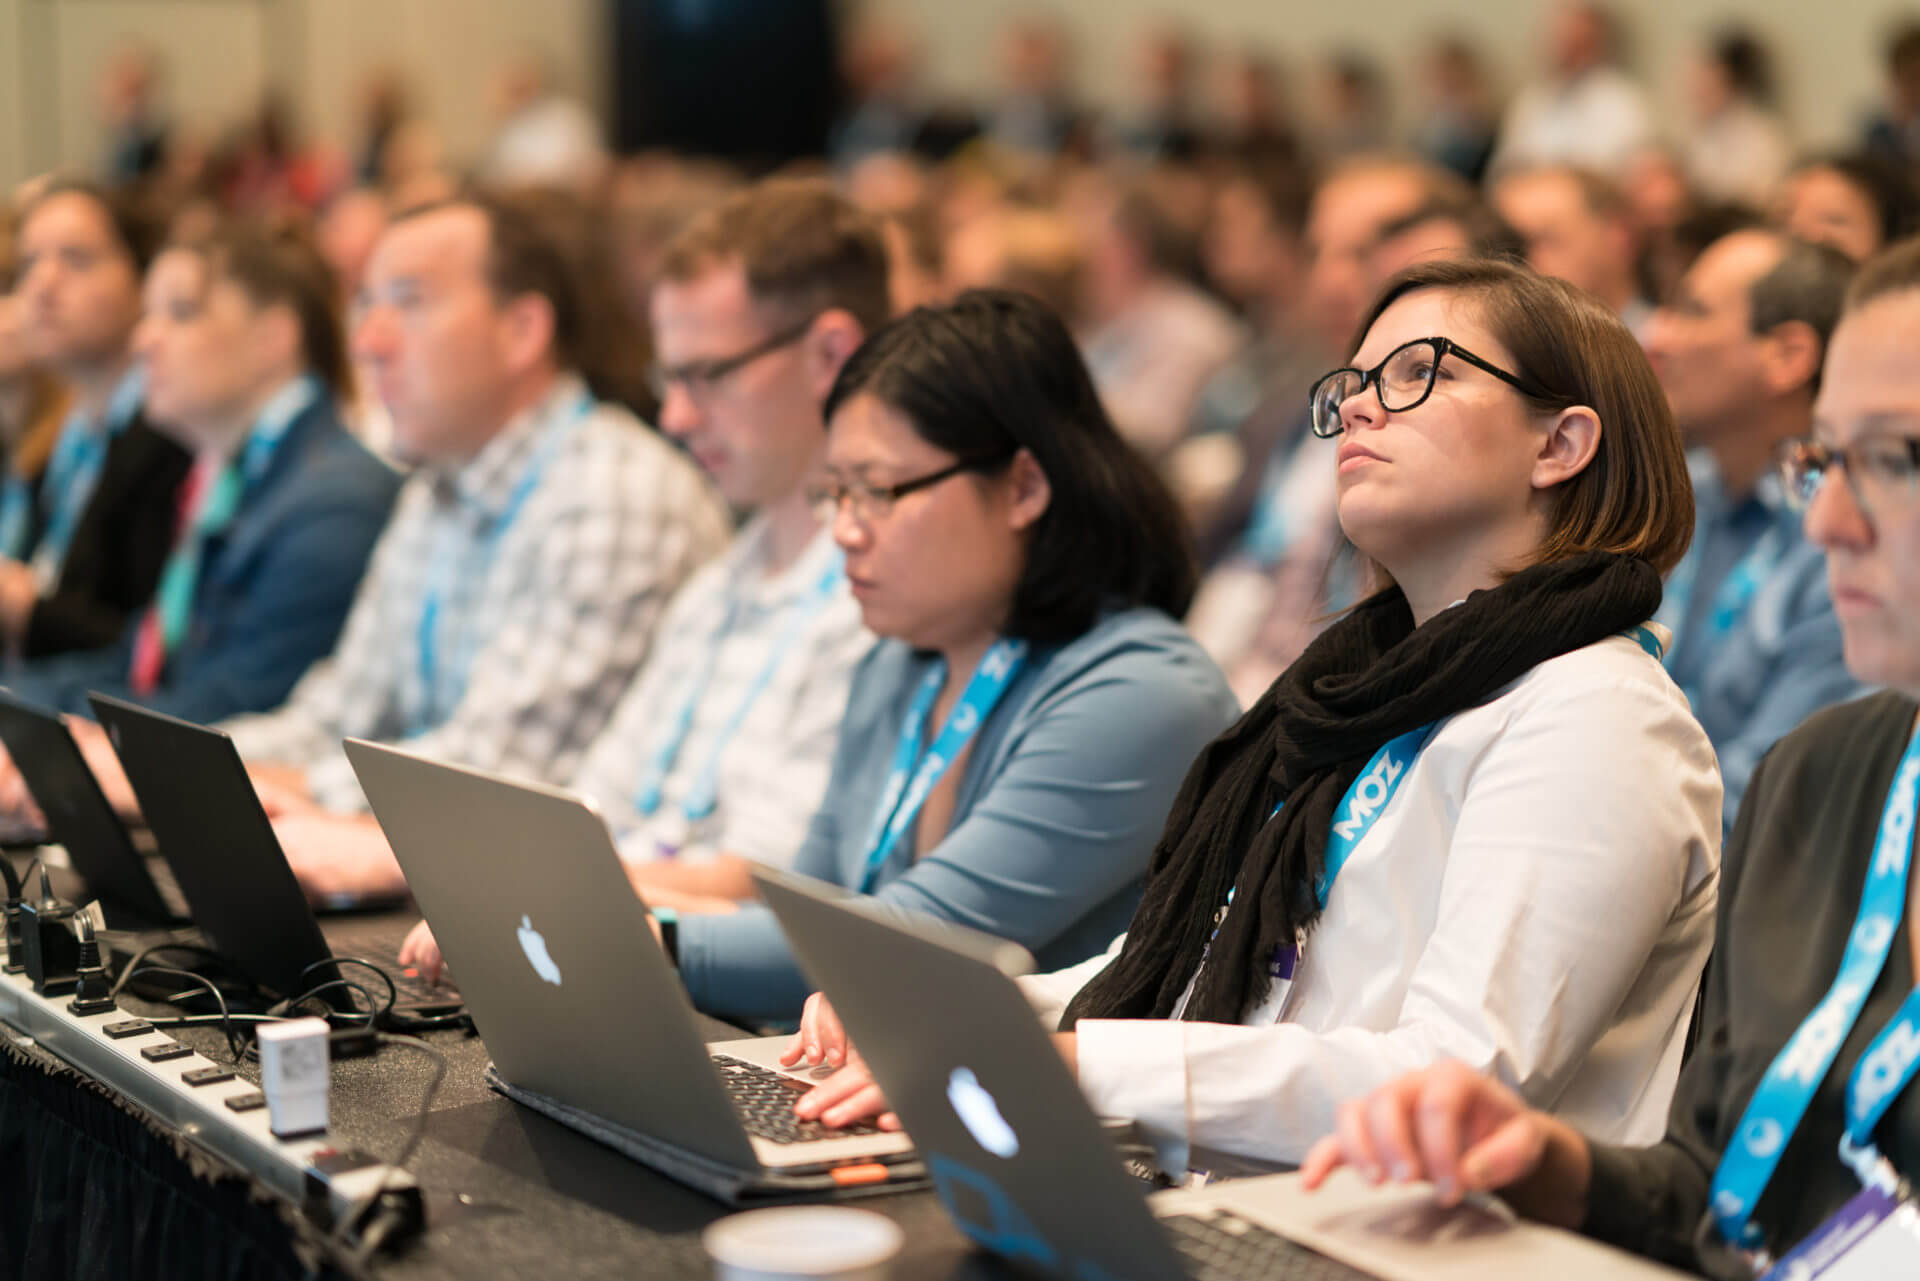 Want to speak at SMX West? Here's how